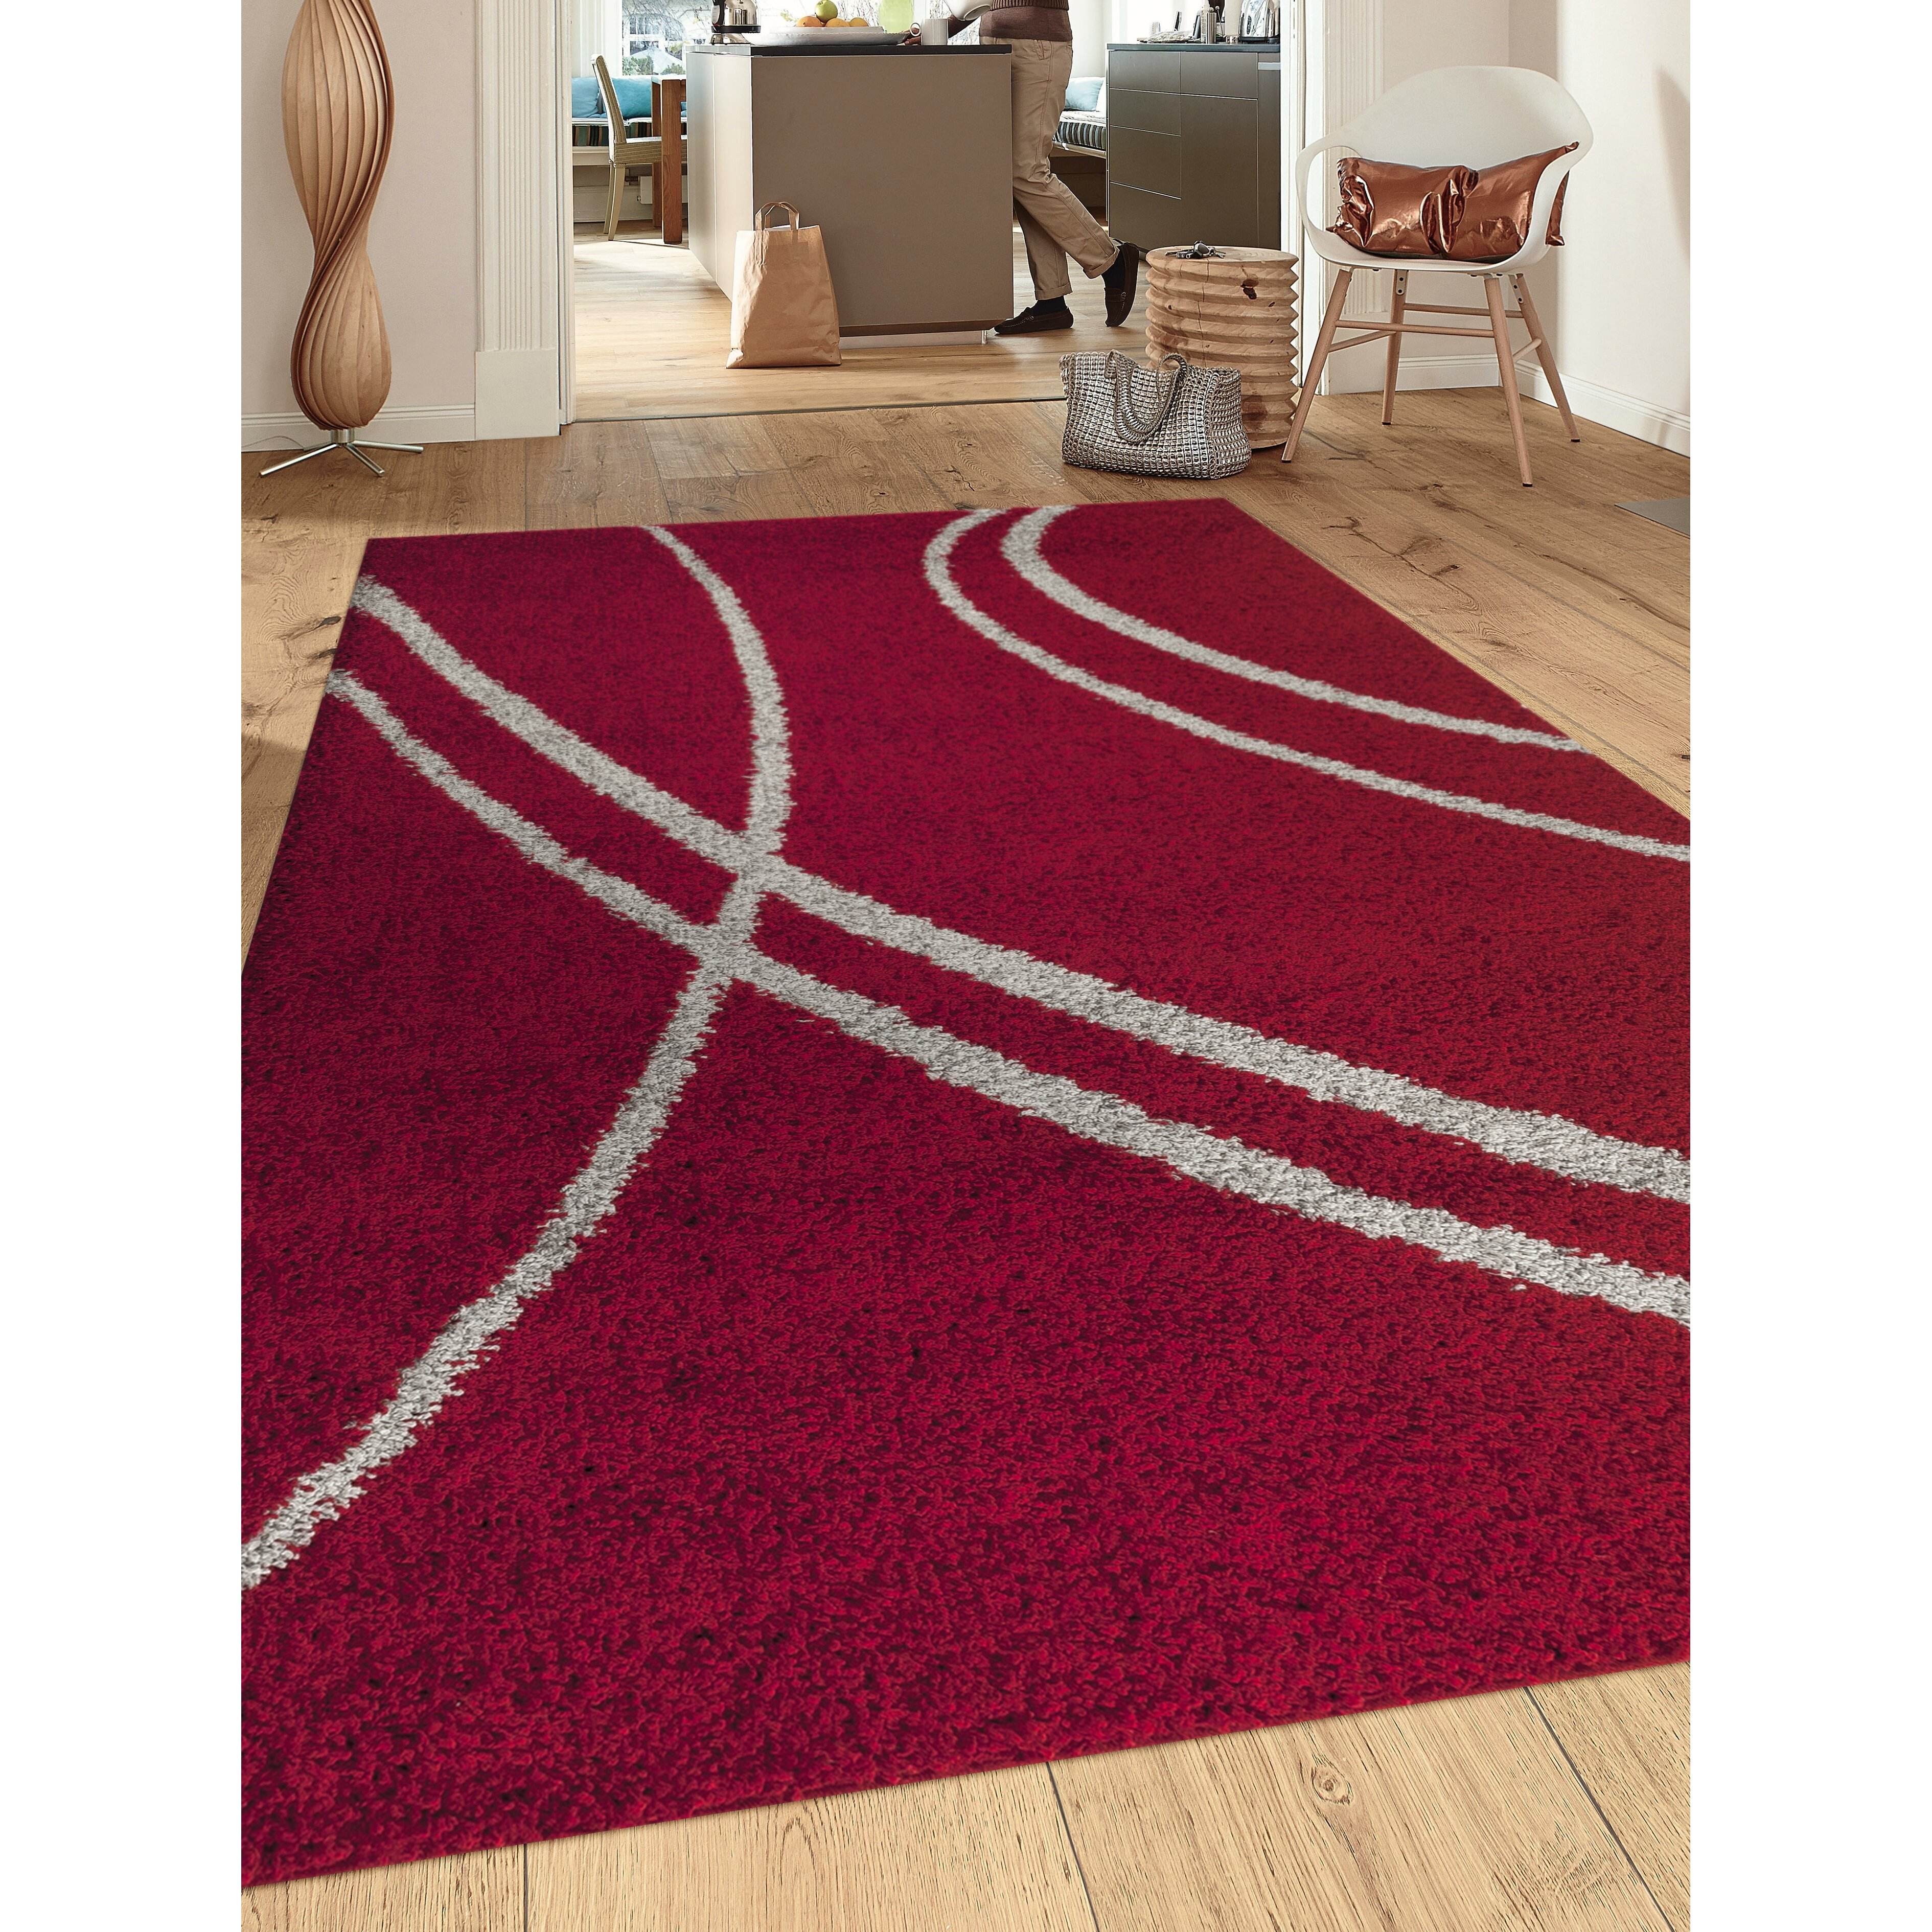 world rug gallery florida red gray area rug wayfair supply. Black Bedroom Furniture Sets. Home Design Ideas